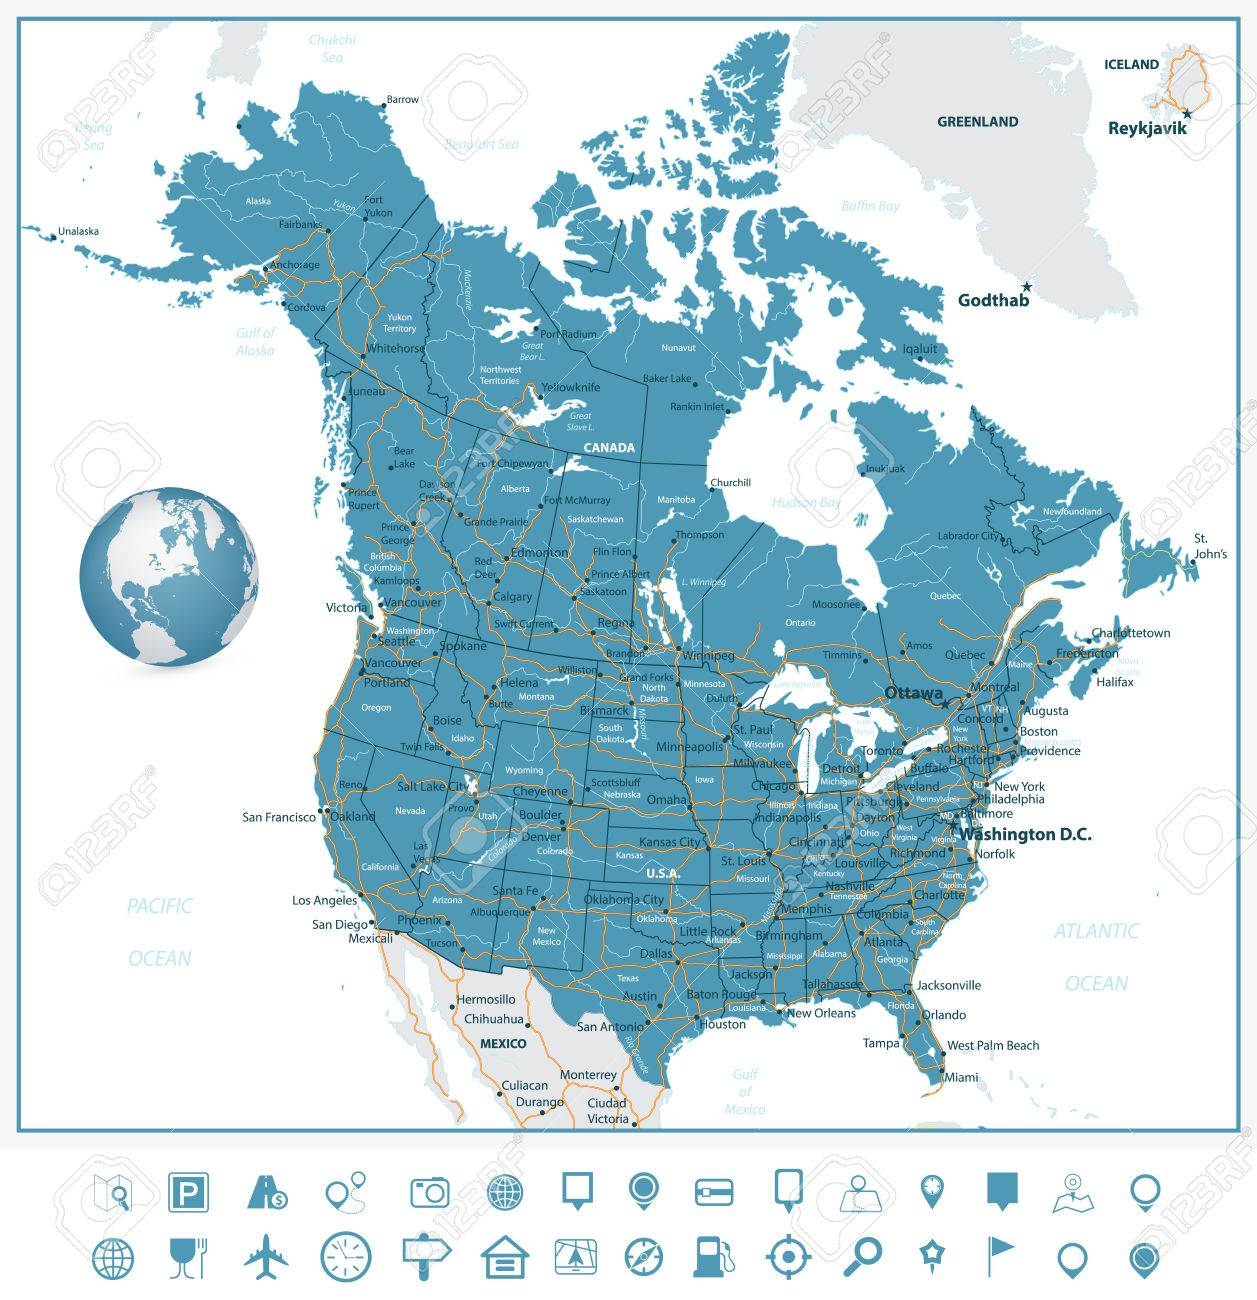 USA And Canada Road Map And Navigation Icons With States - Capital of canada map